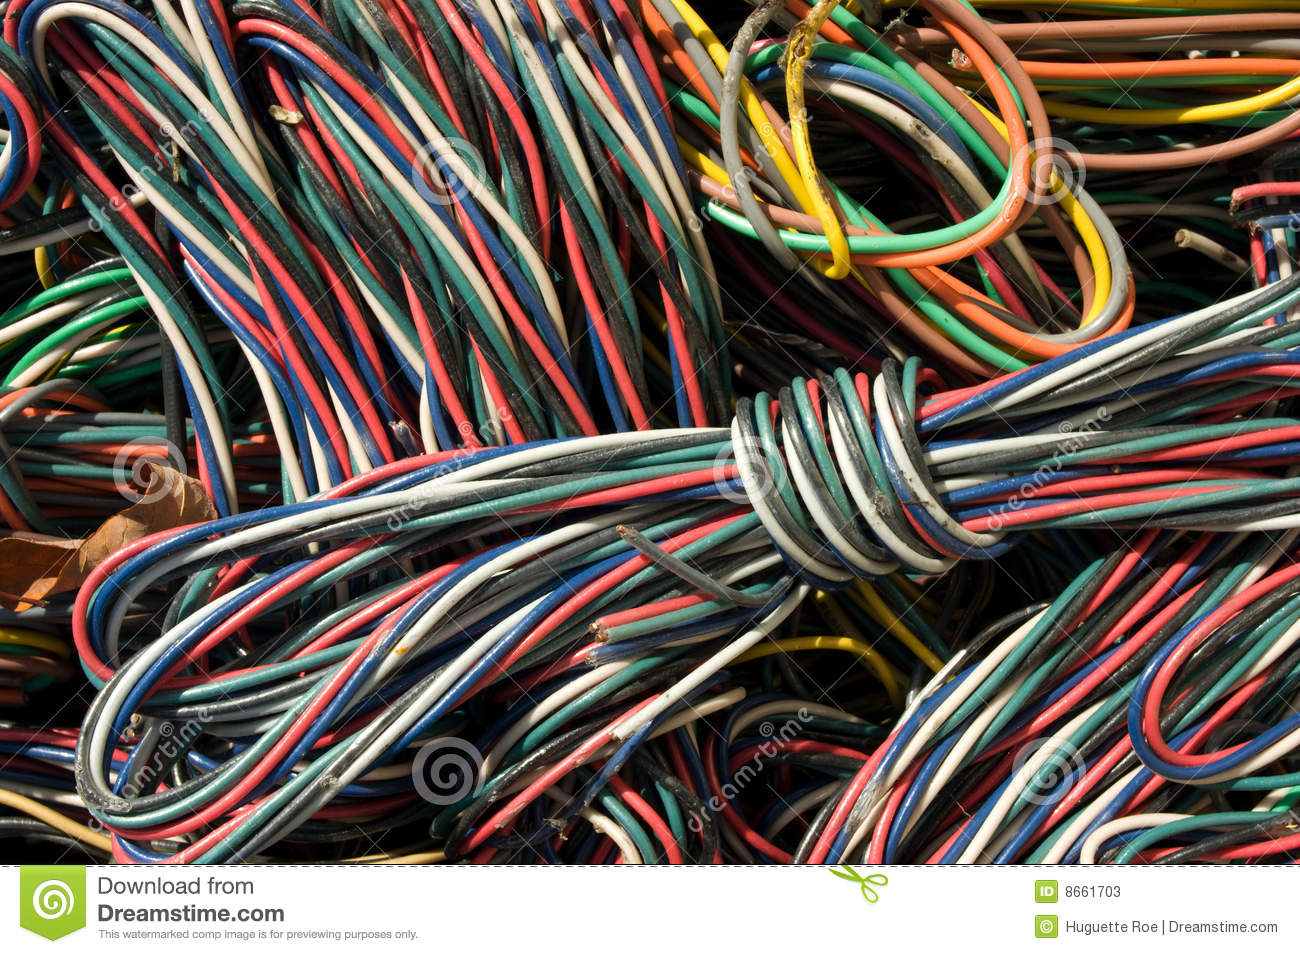 Cables close-up